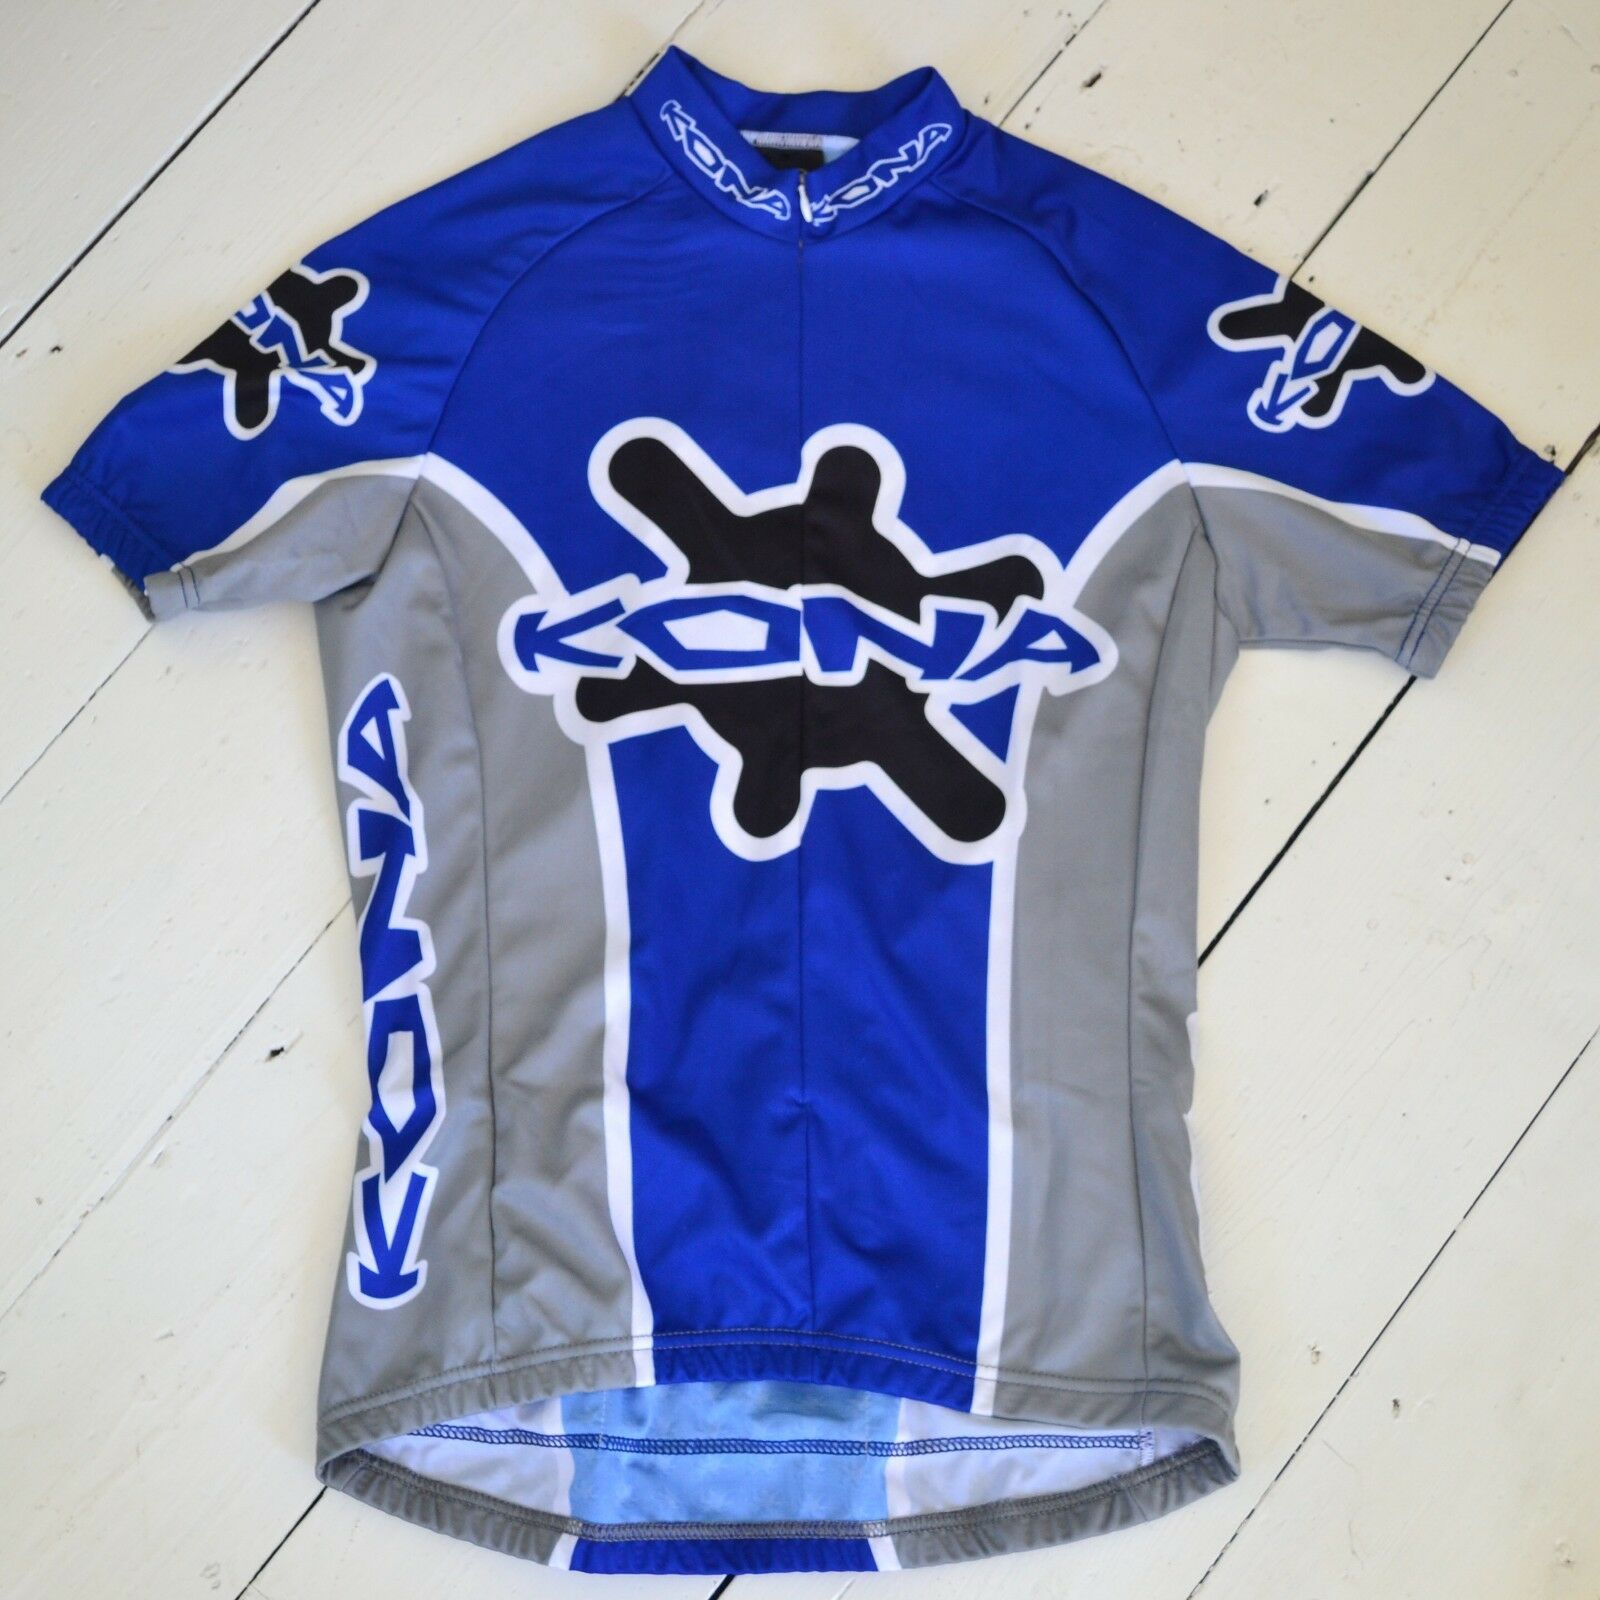 Rare retro vintage bluee and grey Kona  bicycles women's S S large cycling jersey  quality guaranteed